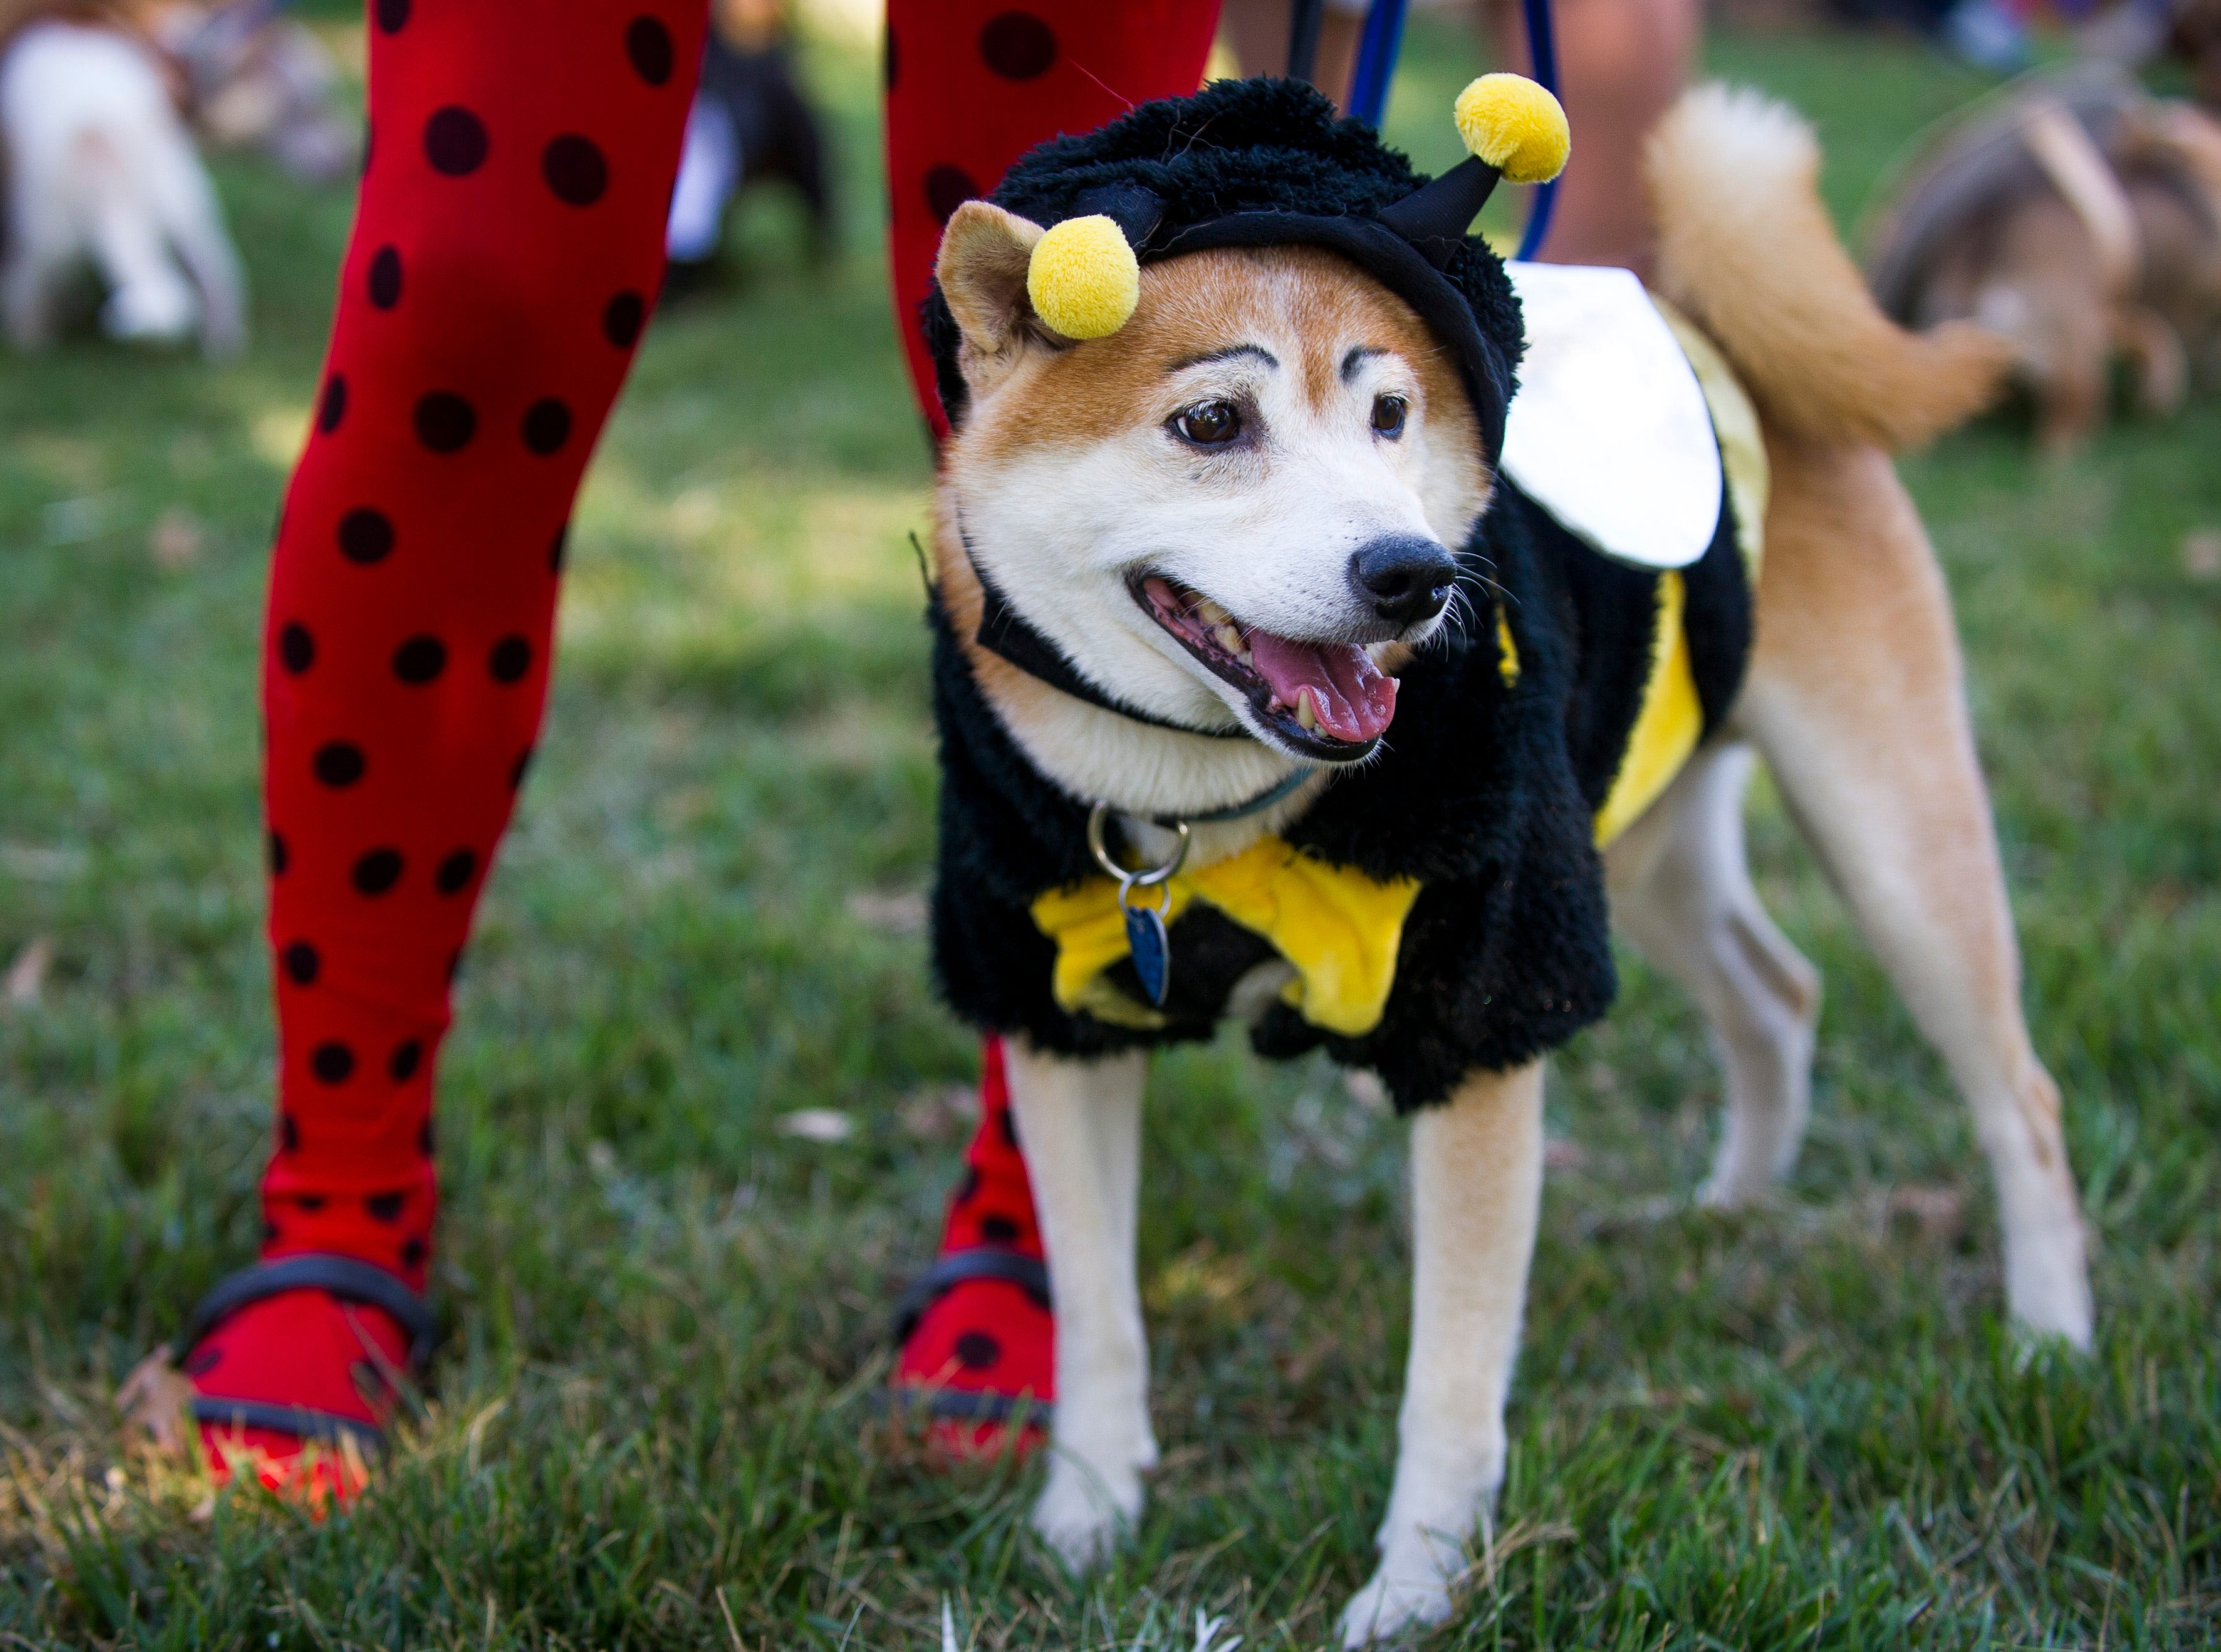 Koda, a Shiba Inu, dressed as a bumble bee for the Howl-O-Ween Pooch Parade held at UT Gardens in Knoxville on Sunday, Oct. 23, 2016.